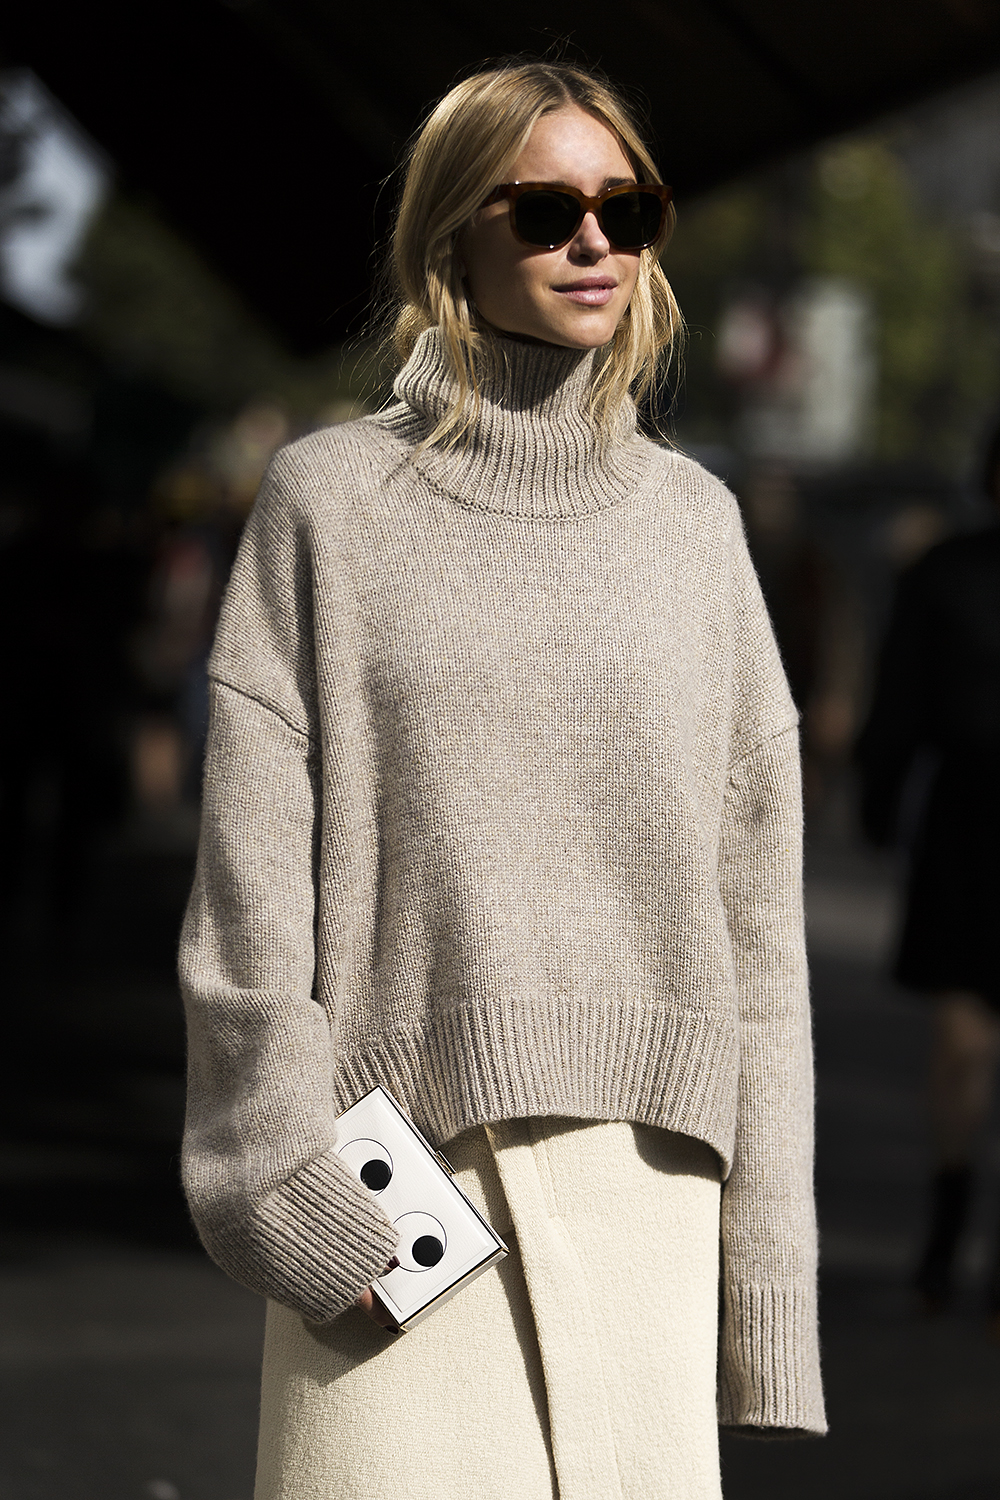 Pernille Teisbaek On the Streets Of Paris